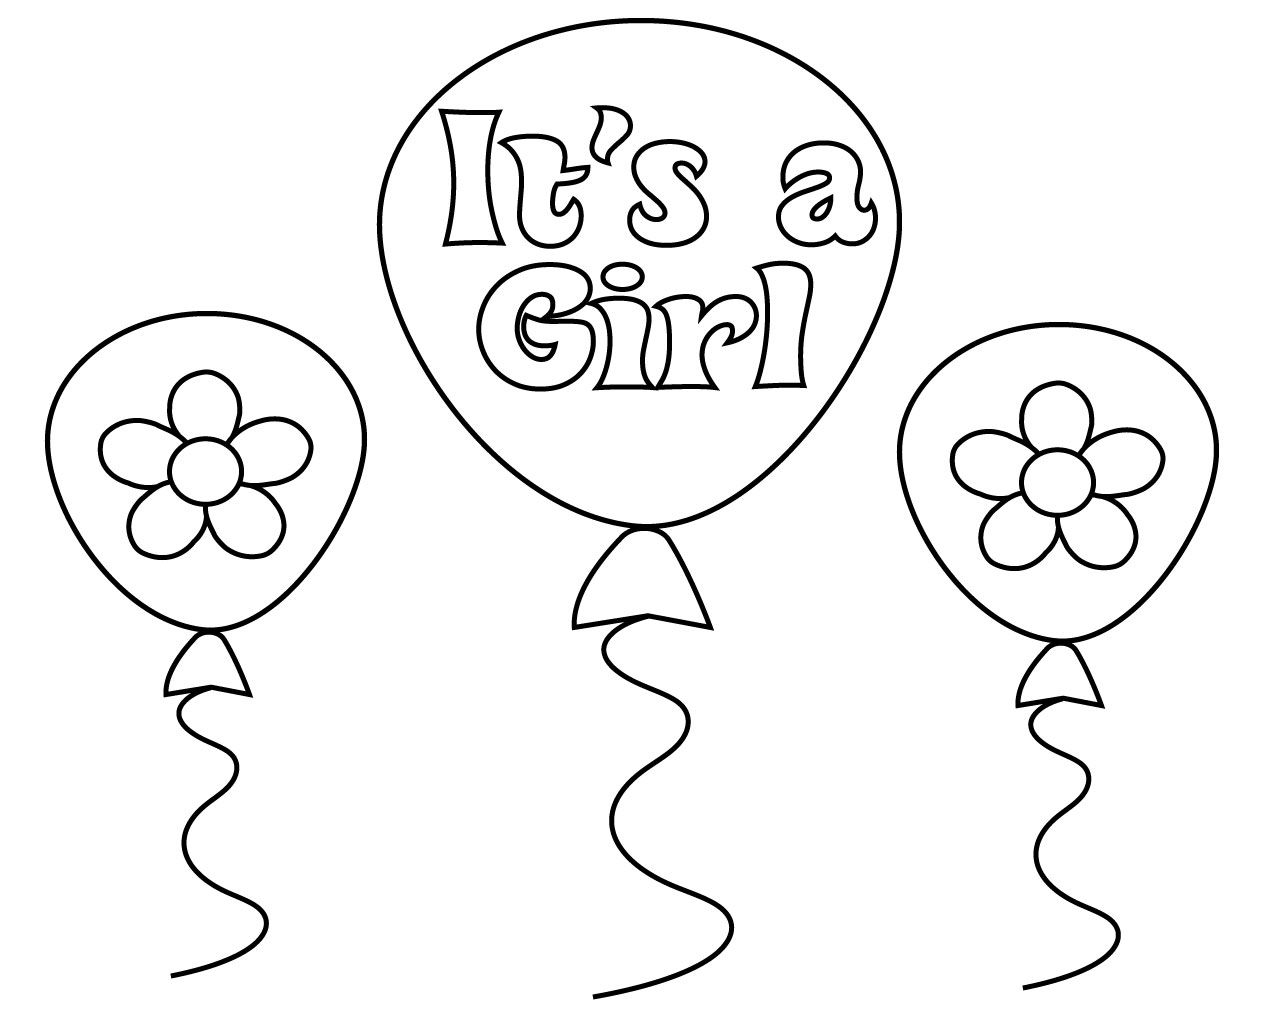 Baby Shower Coloring Pages For Girl Printable Coloring Cards Free Printable Coloring Pages Coloring Pages For Girls